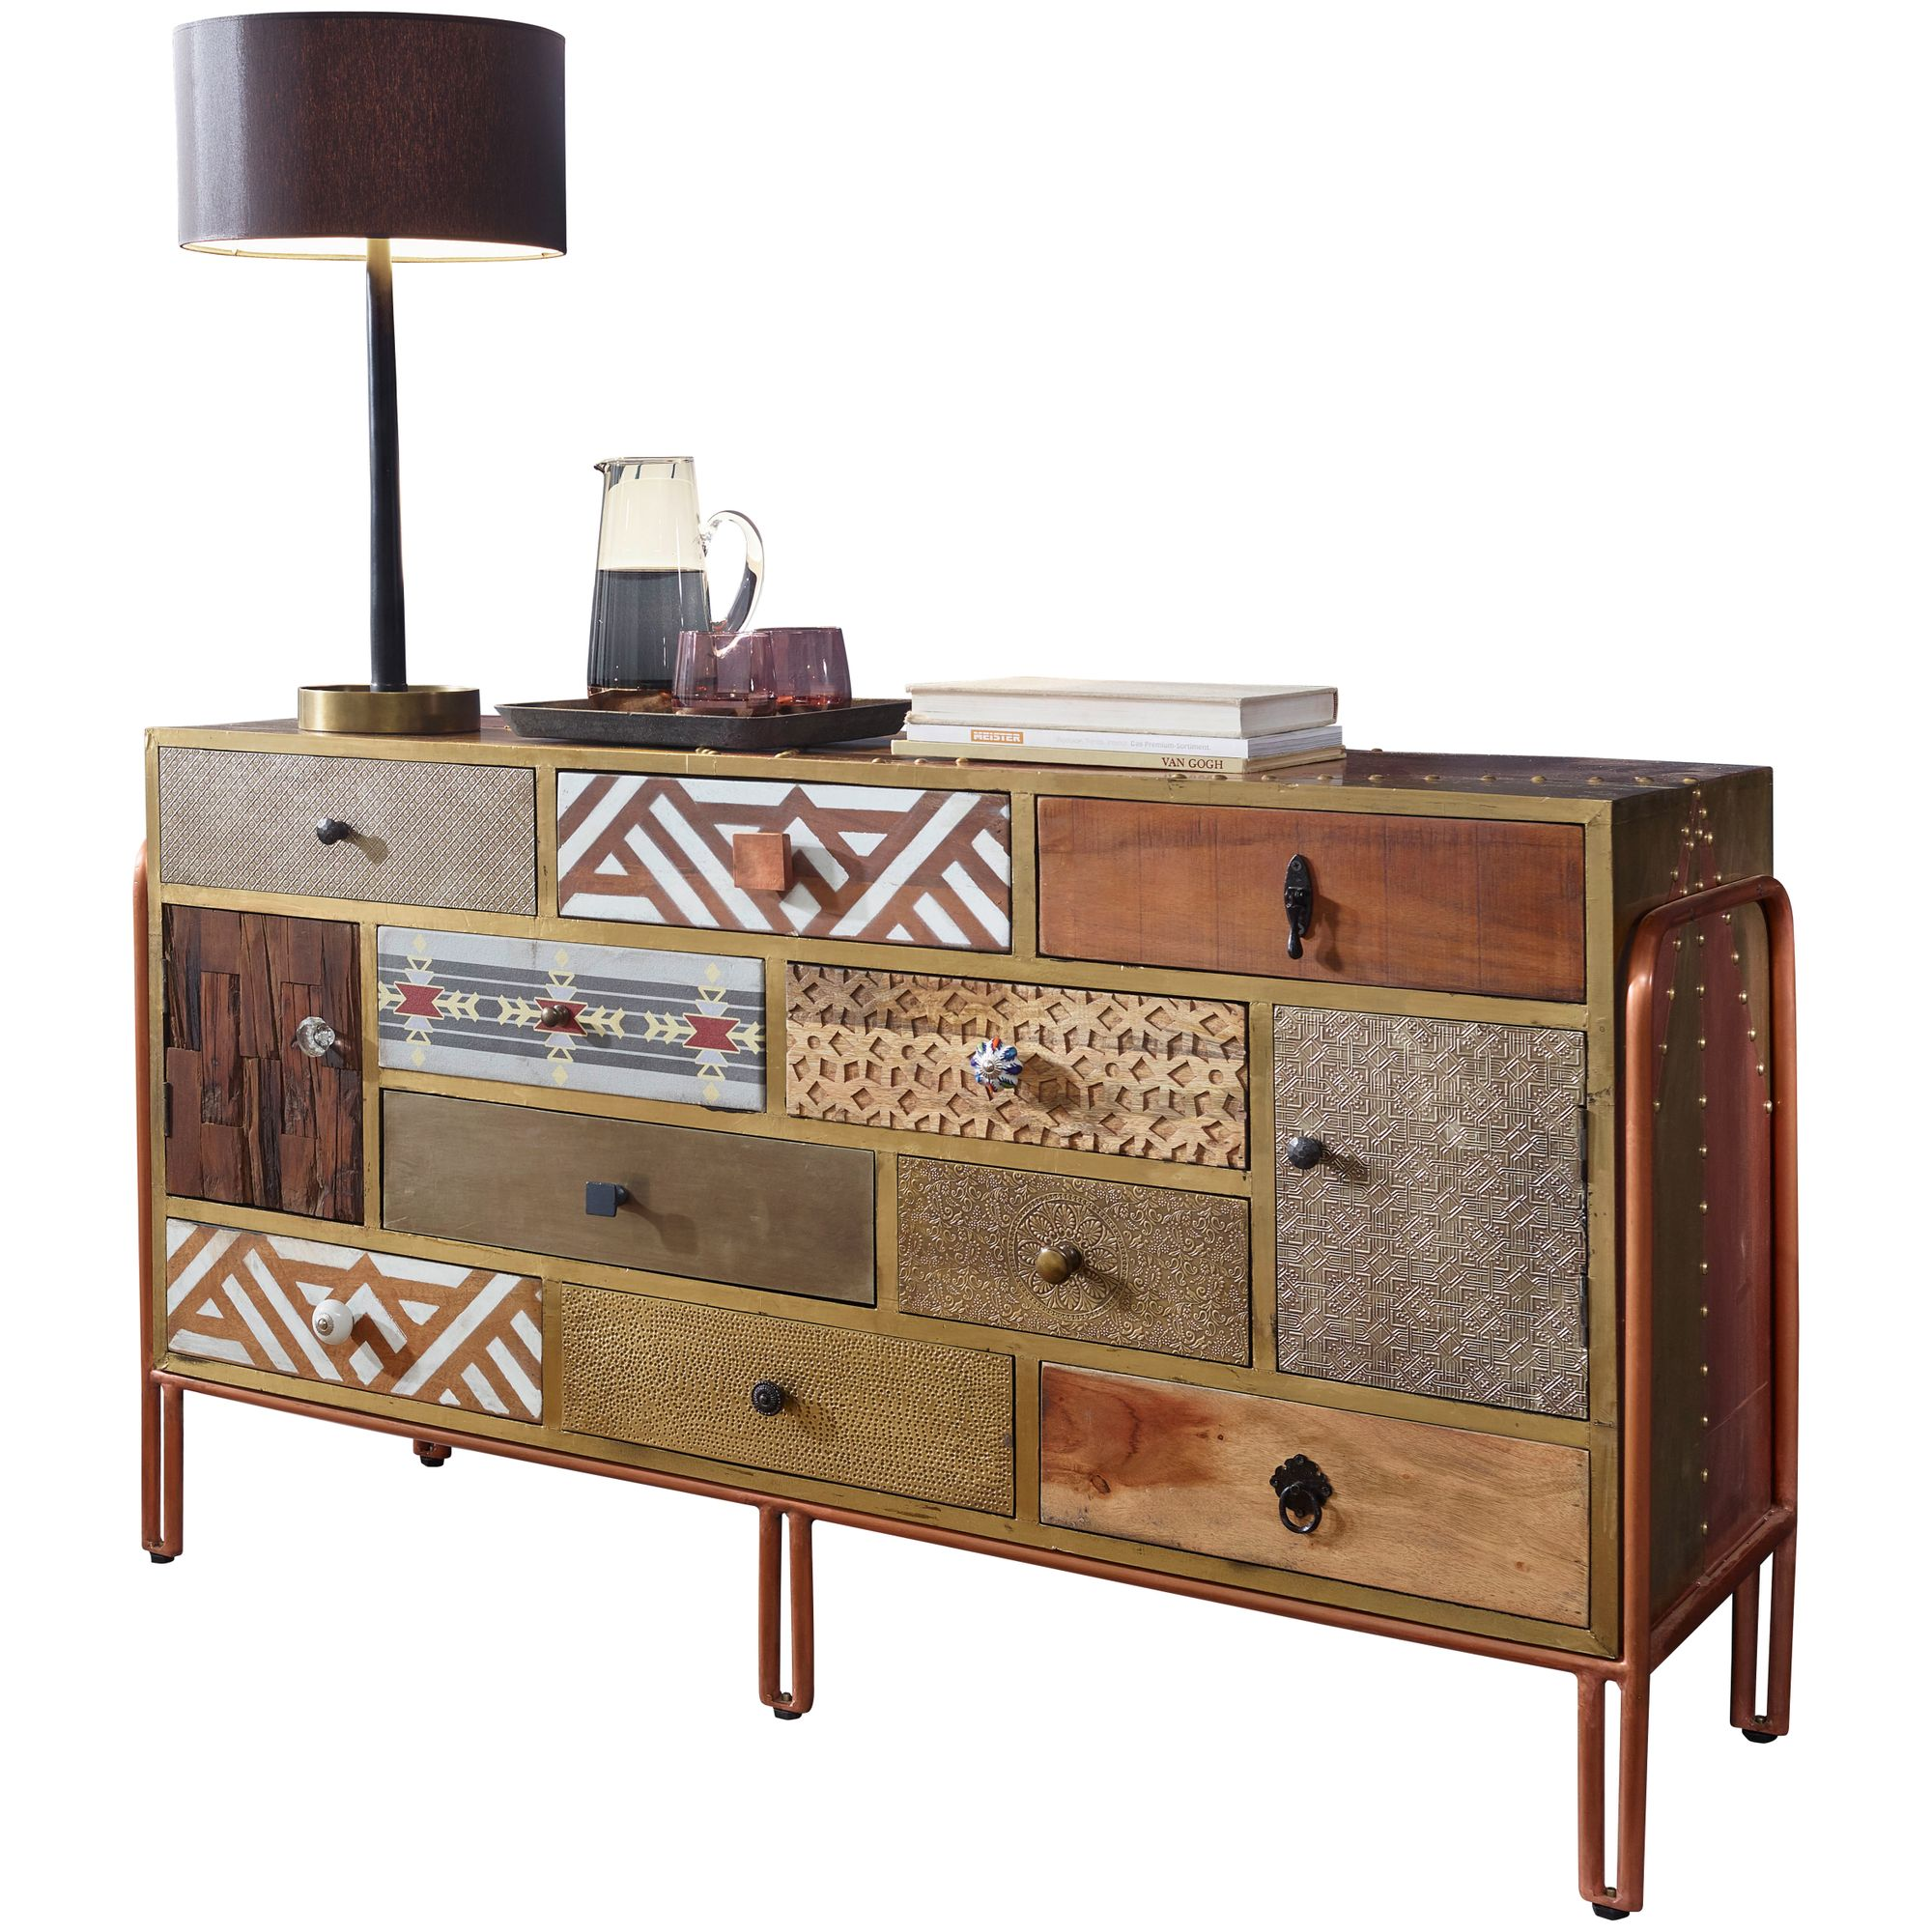 Kommode Industrial Design Highboard Interesting Design Highboard With Design